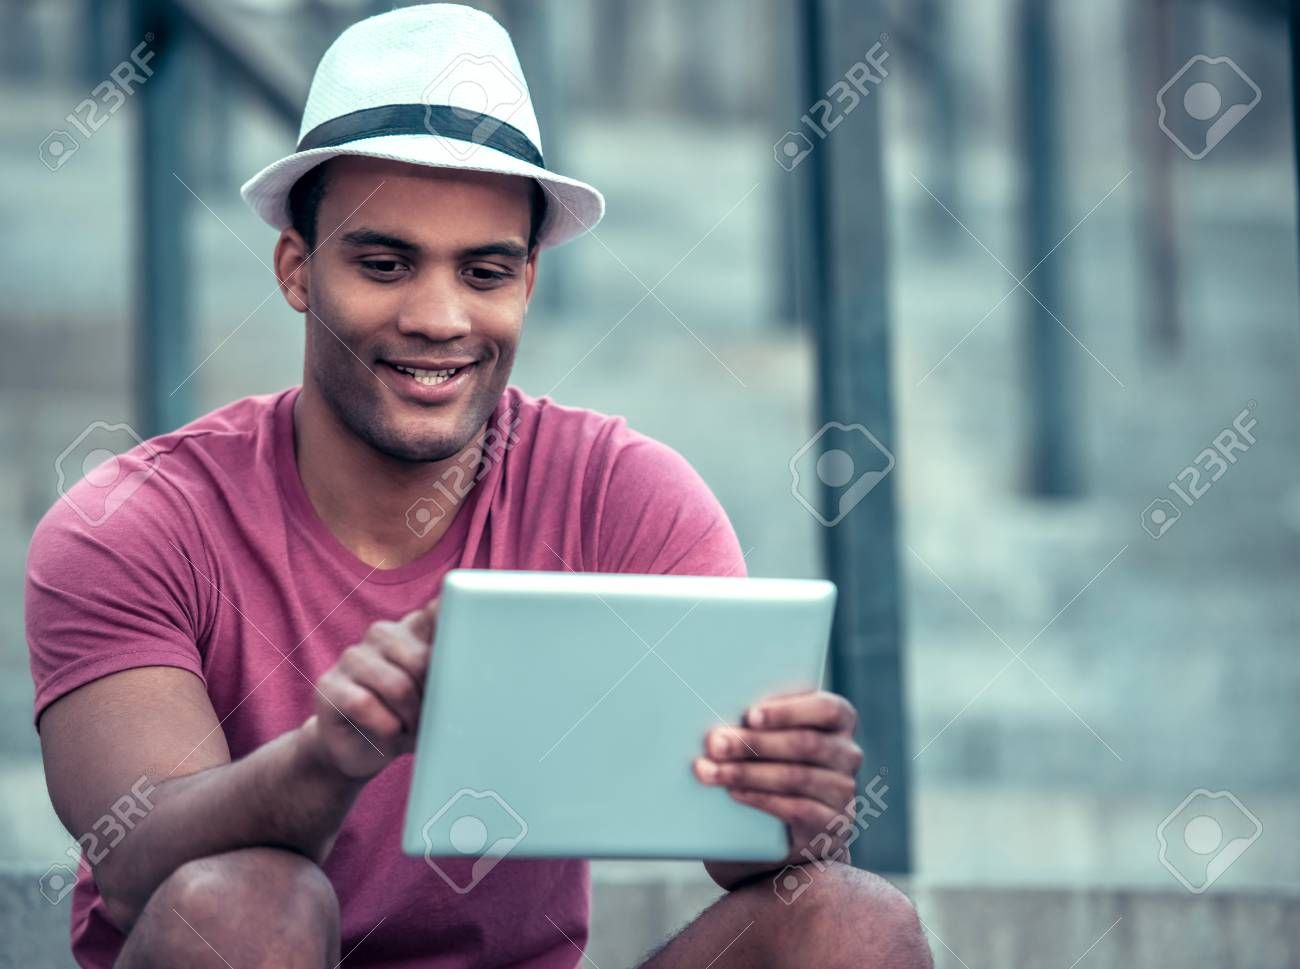 Handsome Afro American man is using a digital tablet and smiling while sitting on stairs during cit